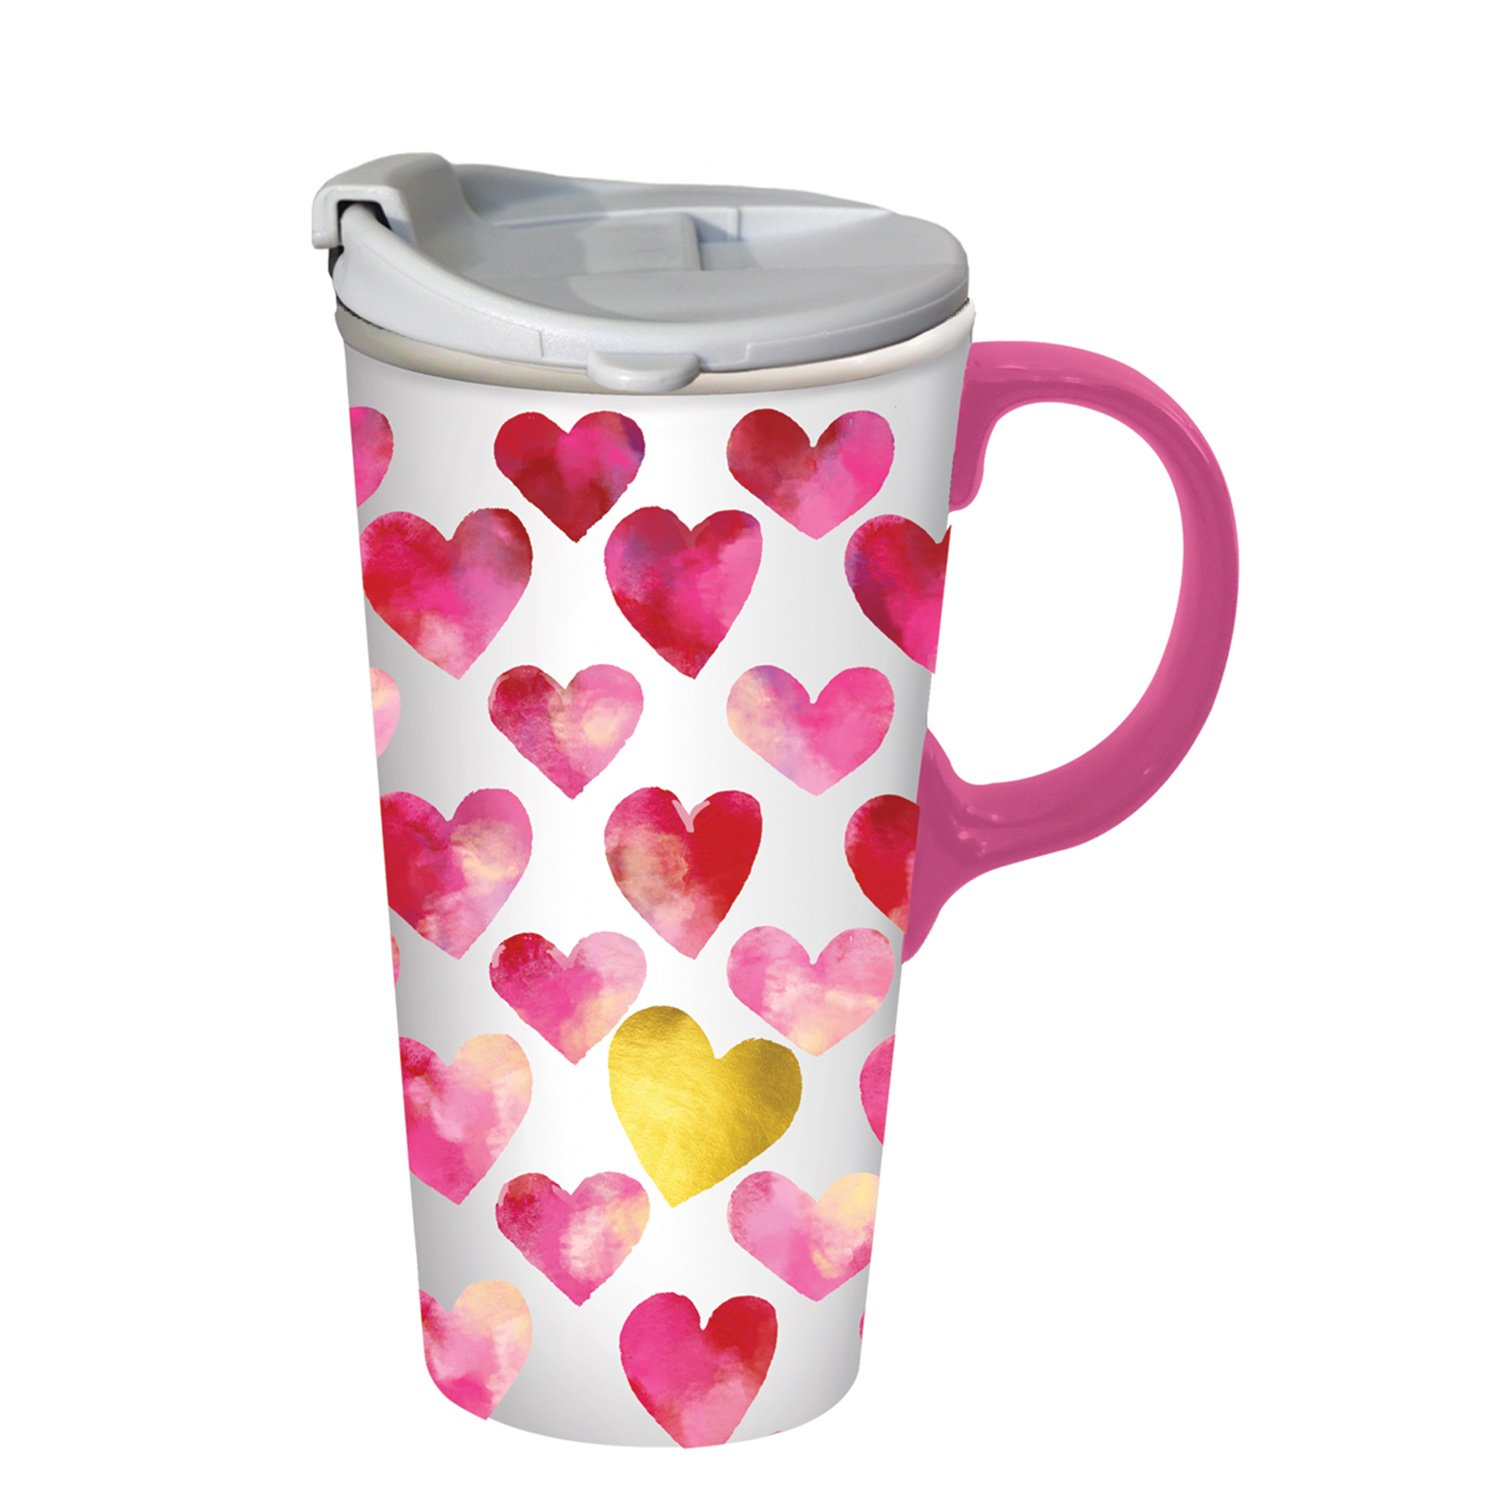 Cypress Home Hearts Full of Love Ceramic Travel Coffee Mug with Metallic Accents and Gift Box, 17 ounces